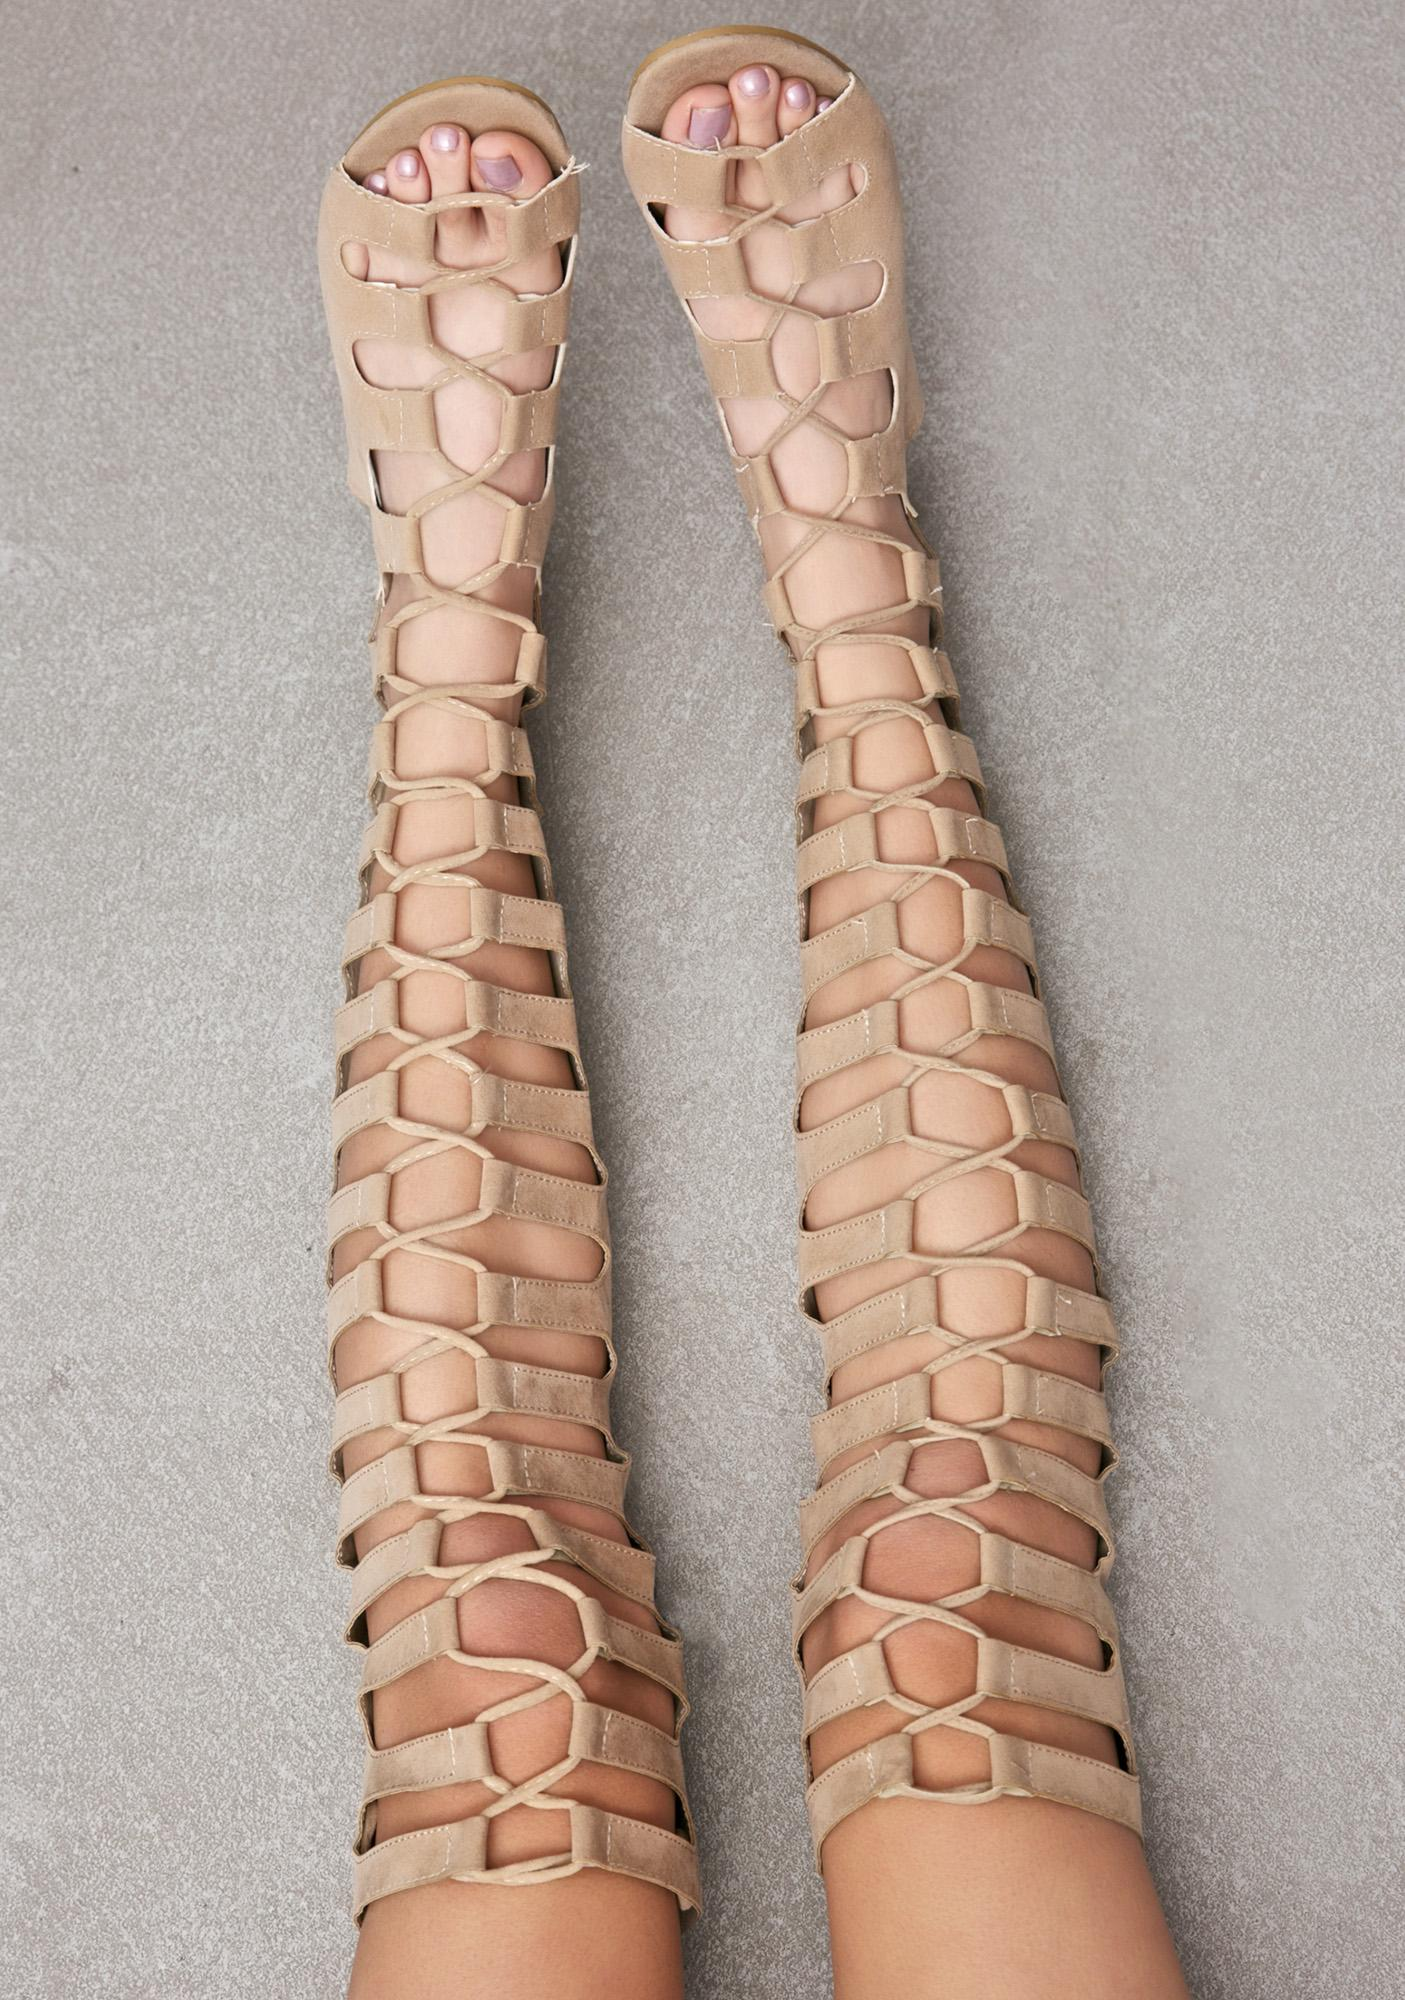 Nude Resist Lace-Up Sandals